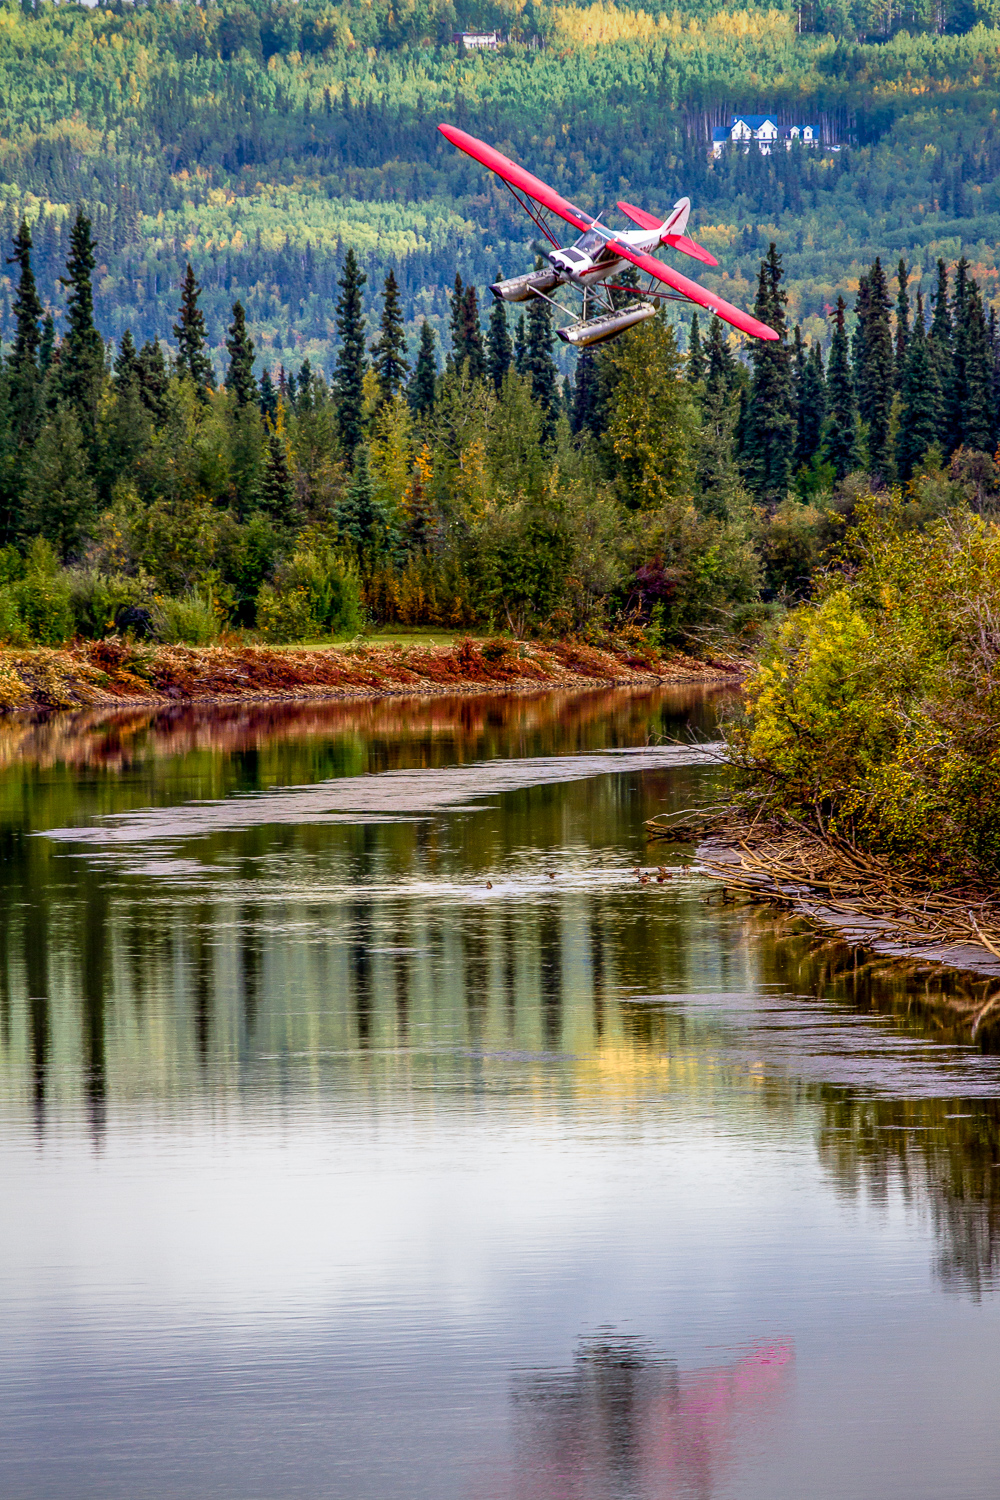 River Landing Fairbanks, Alaska